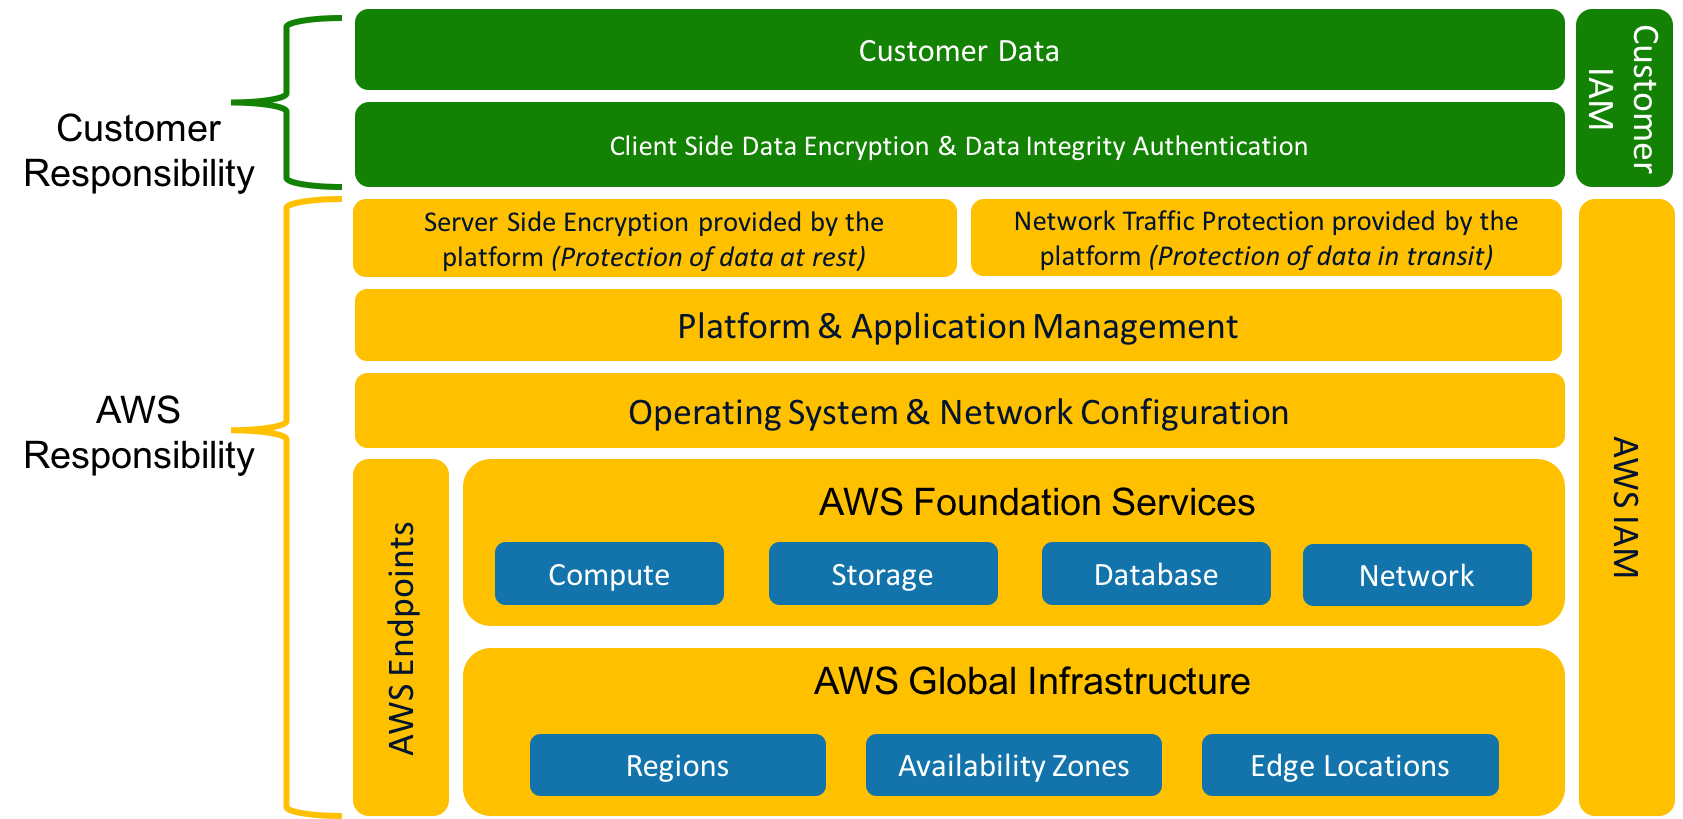 Customer responsibility and AWS responsibility